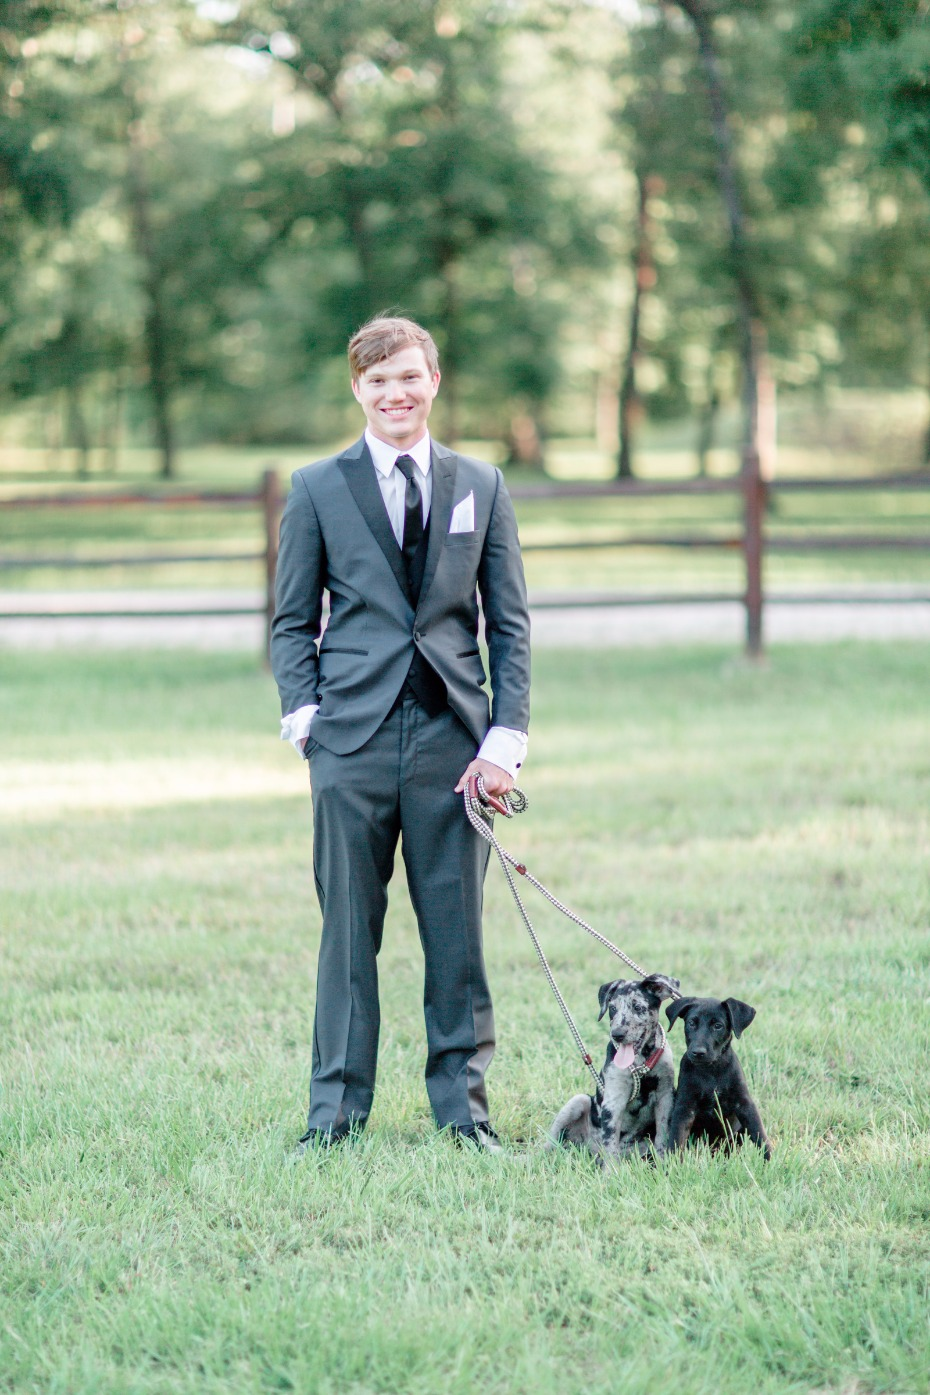 who's cuter this groom in his three piece suit or these adorable puppies